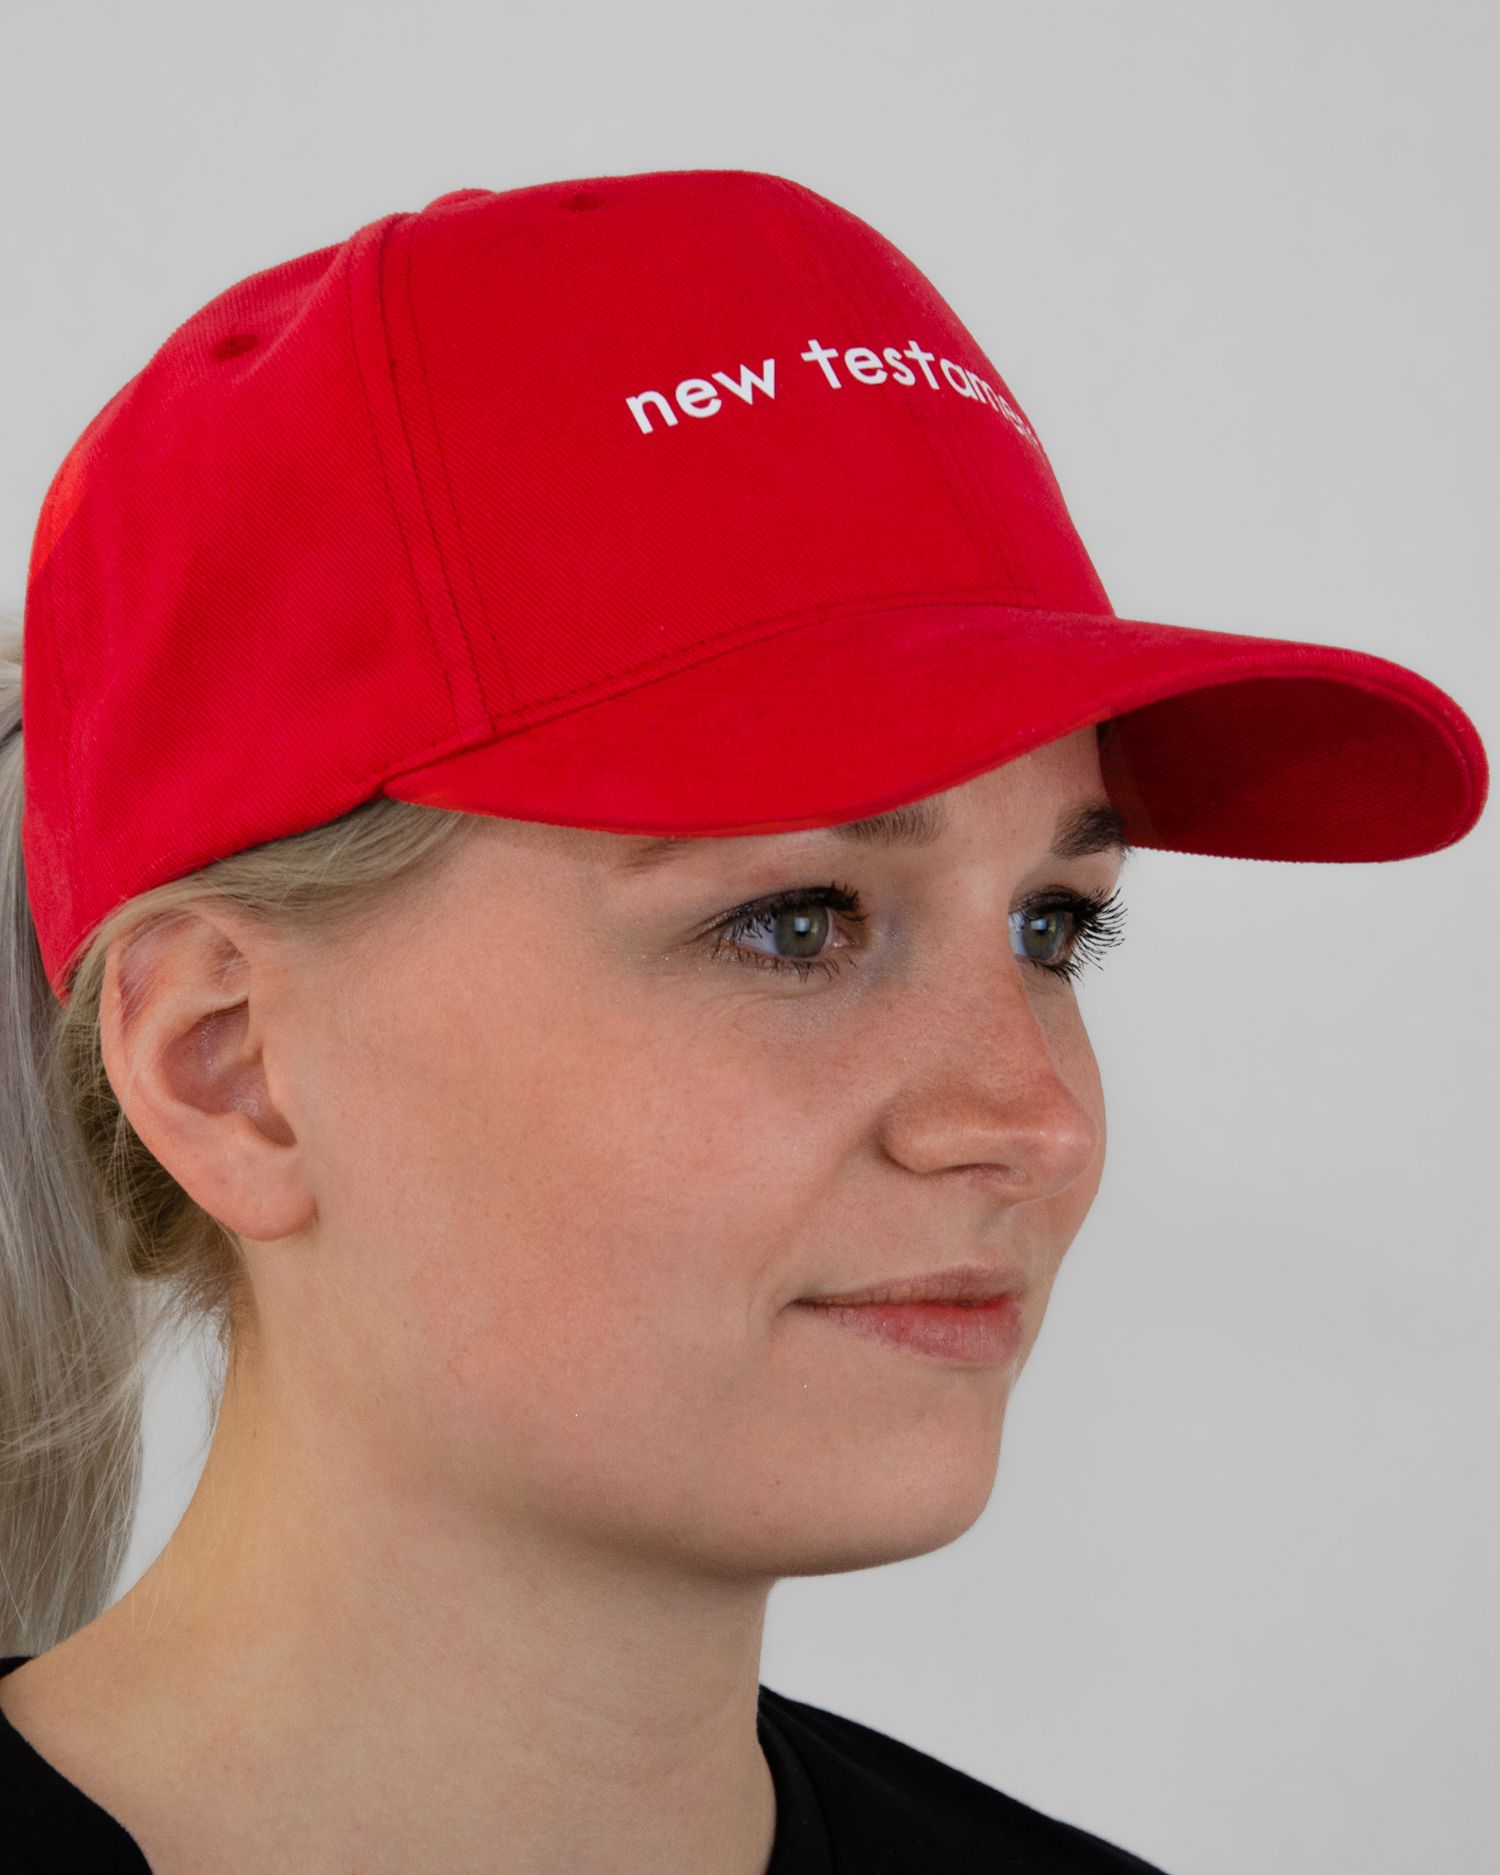 New Testament Original Classic Yupoong Cap Rood Red Dames-zijaanzicht2